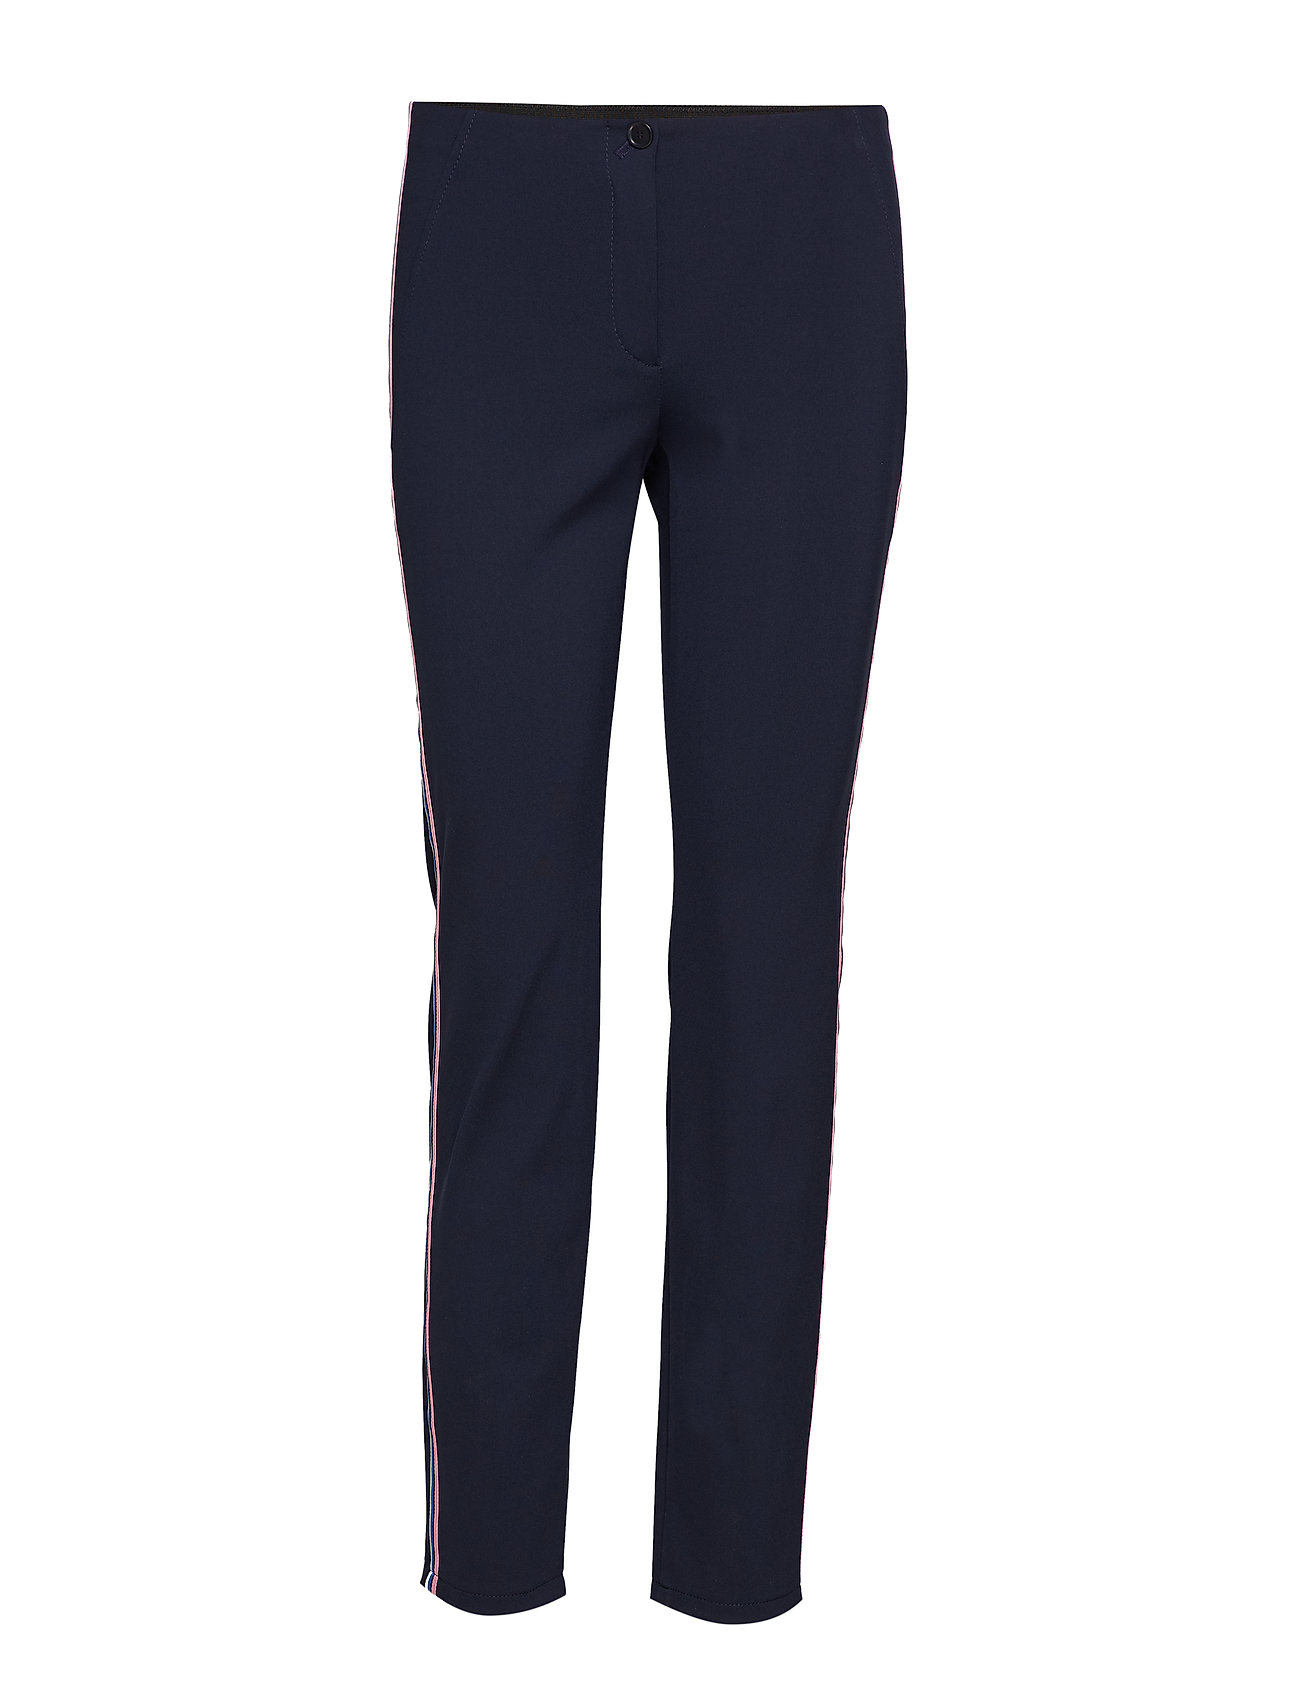 Gerry Weber LEISURE TROUSERS LON - DARK NAVY